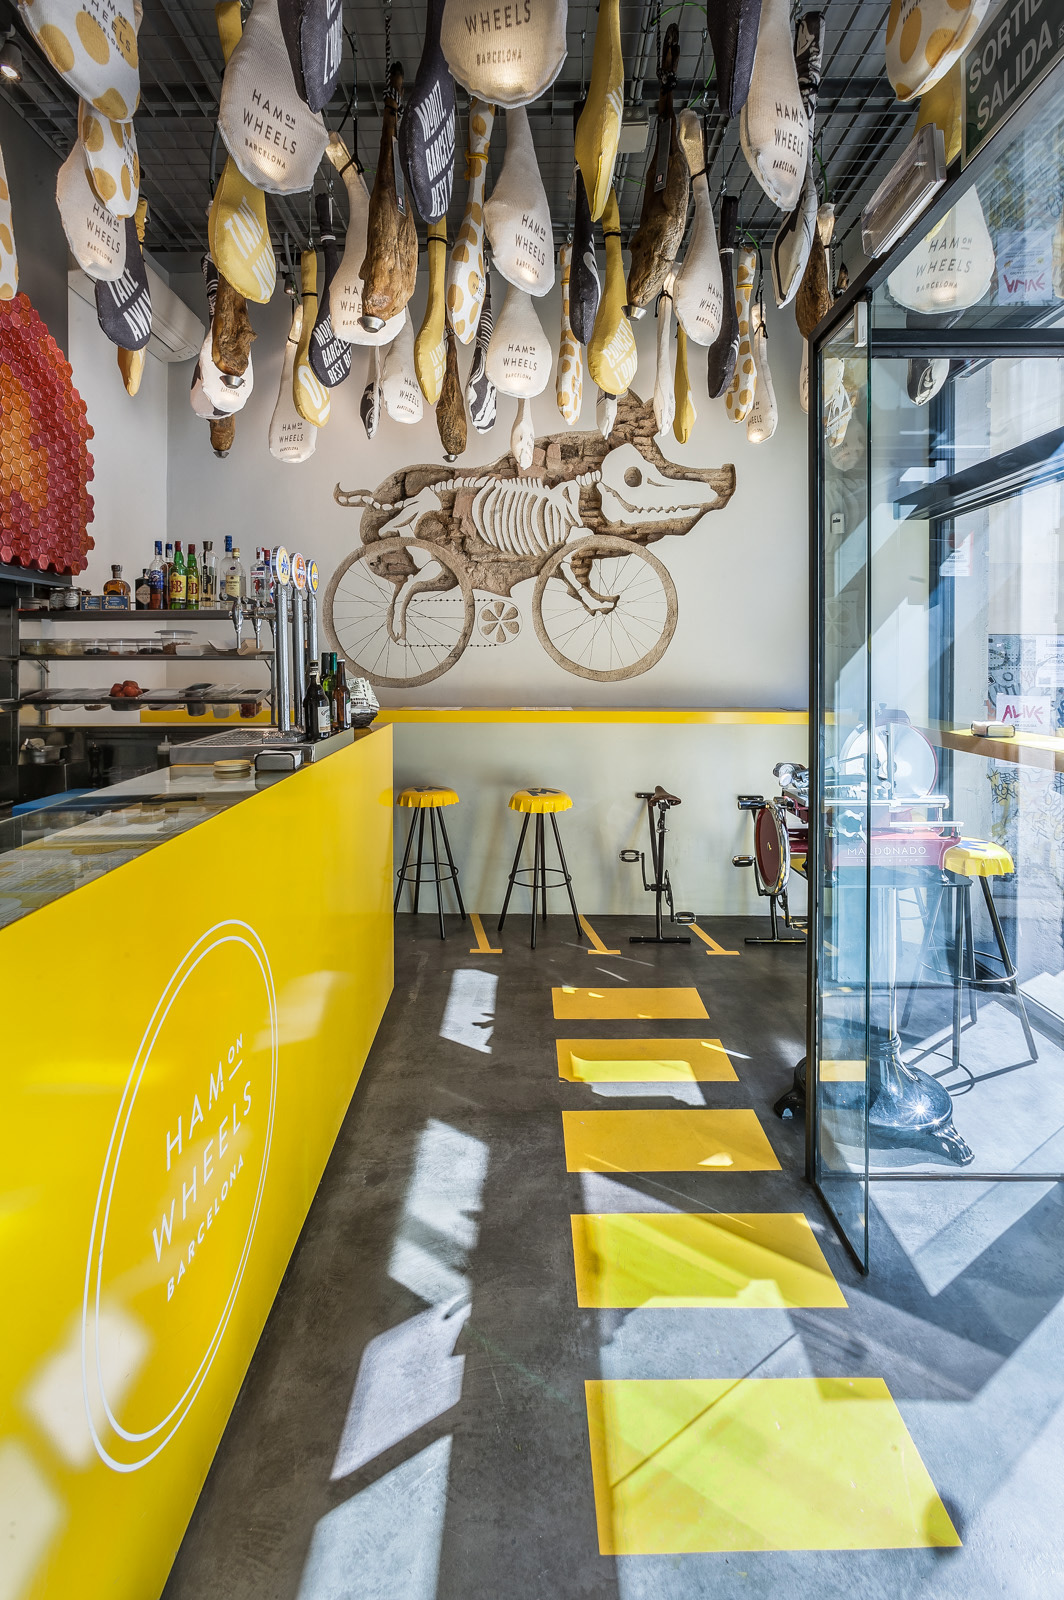 Interior Design and Signage for Ham on Wheels. Designed by External Reference. @enviromeant.com